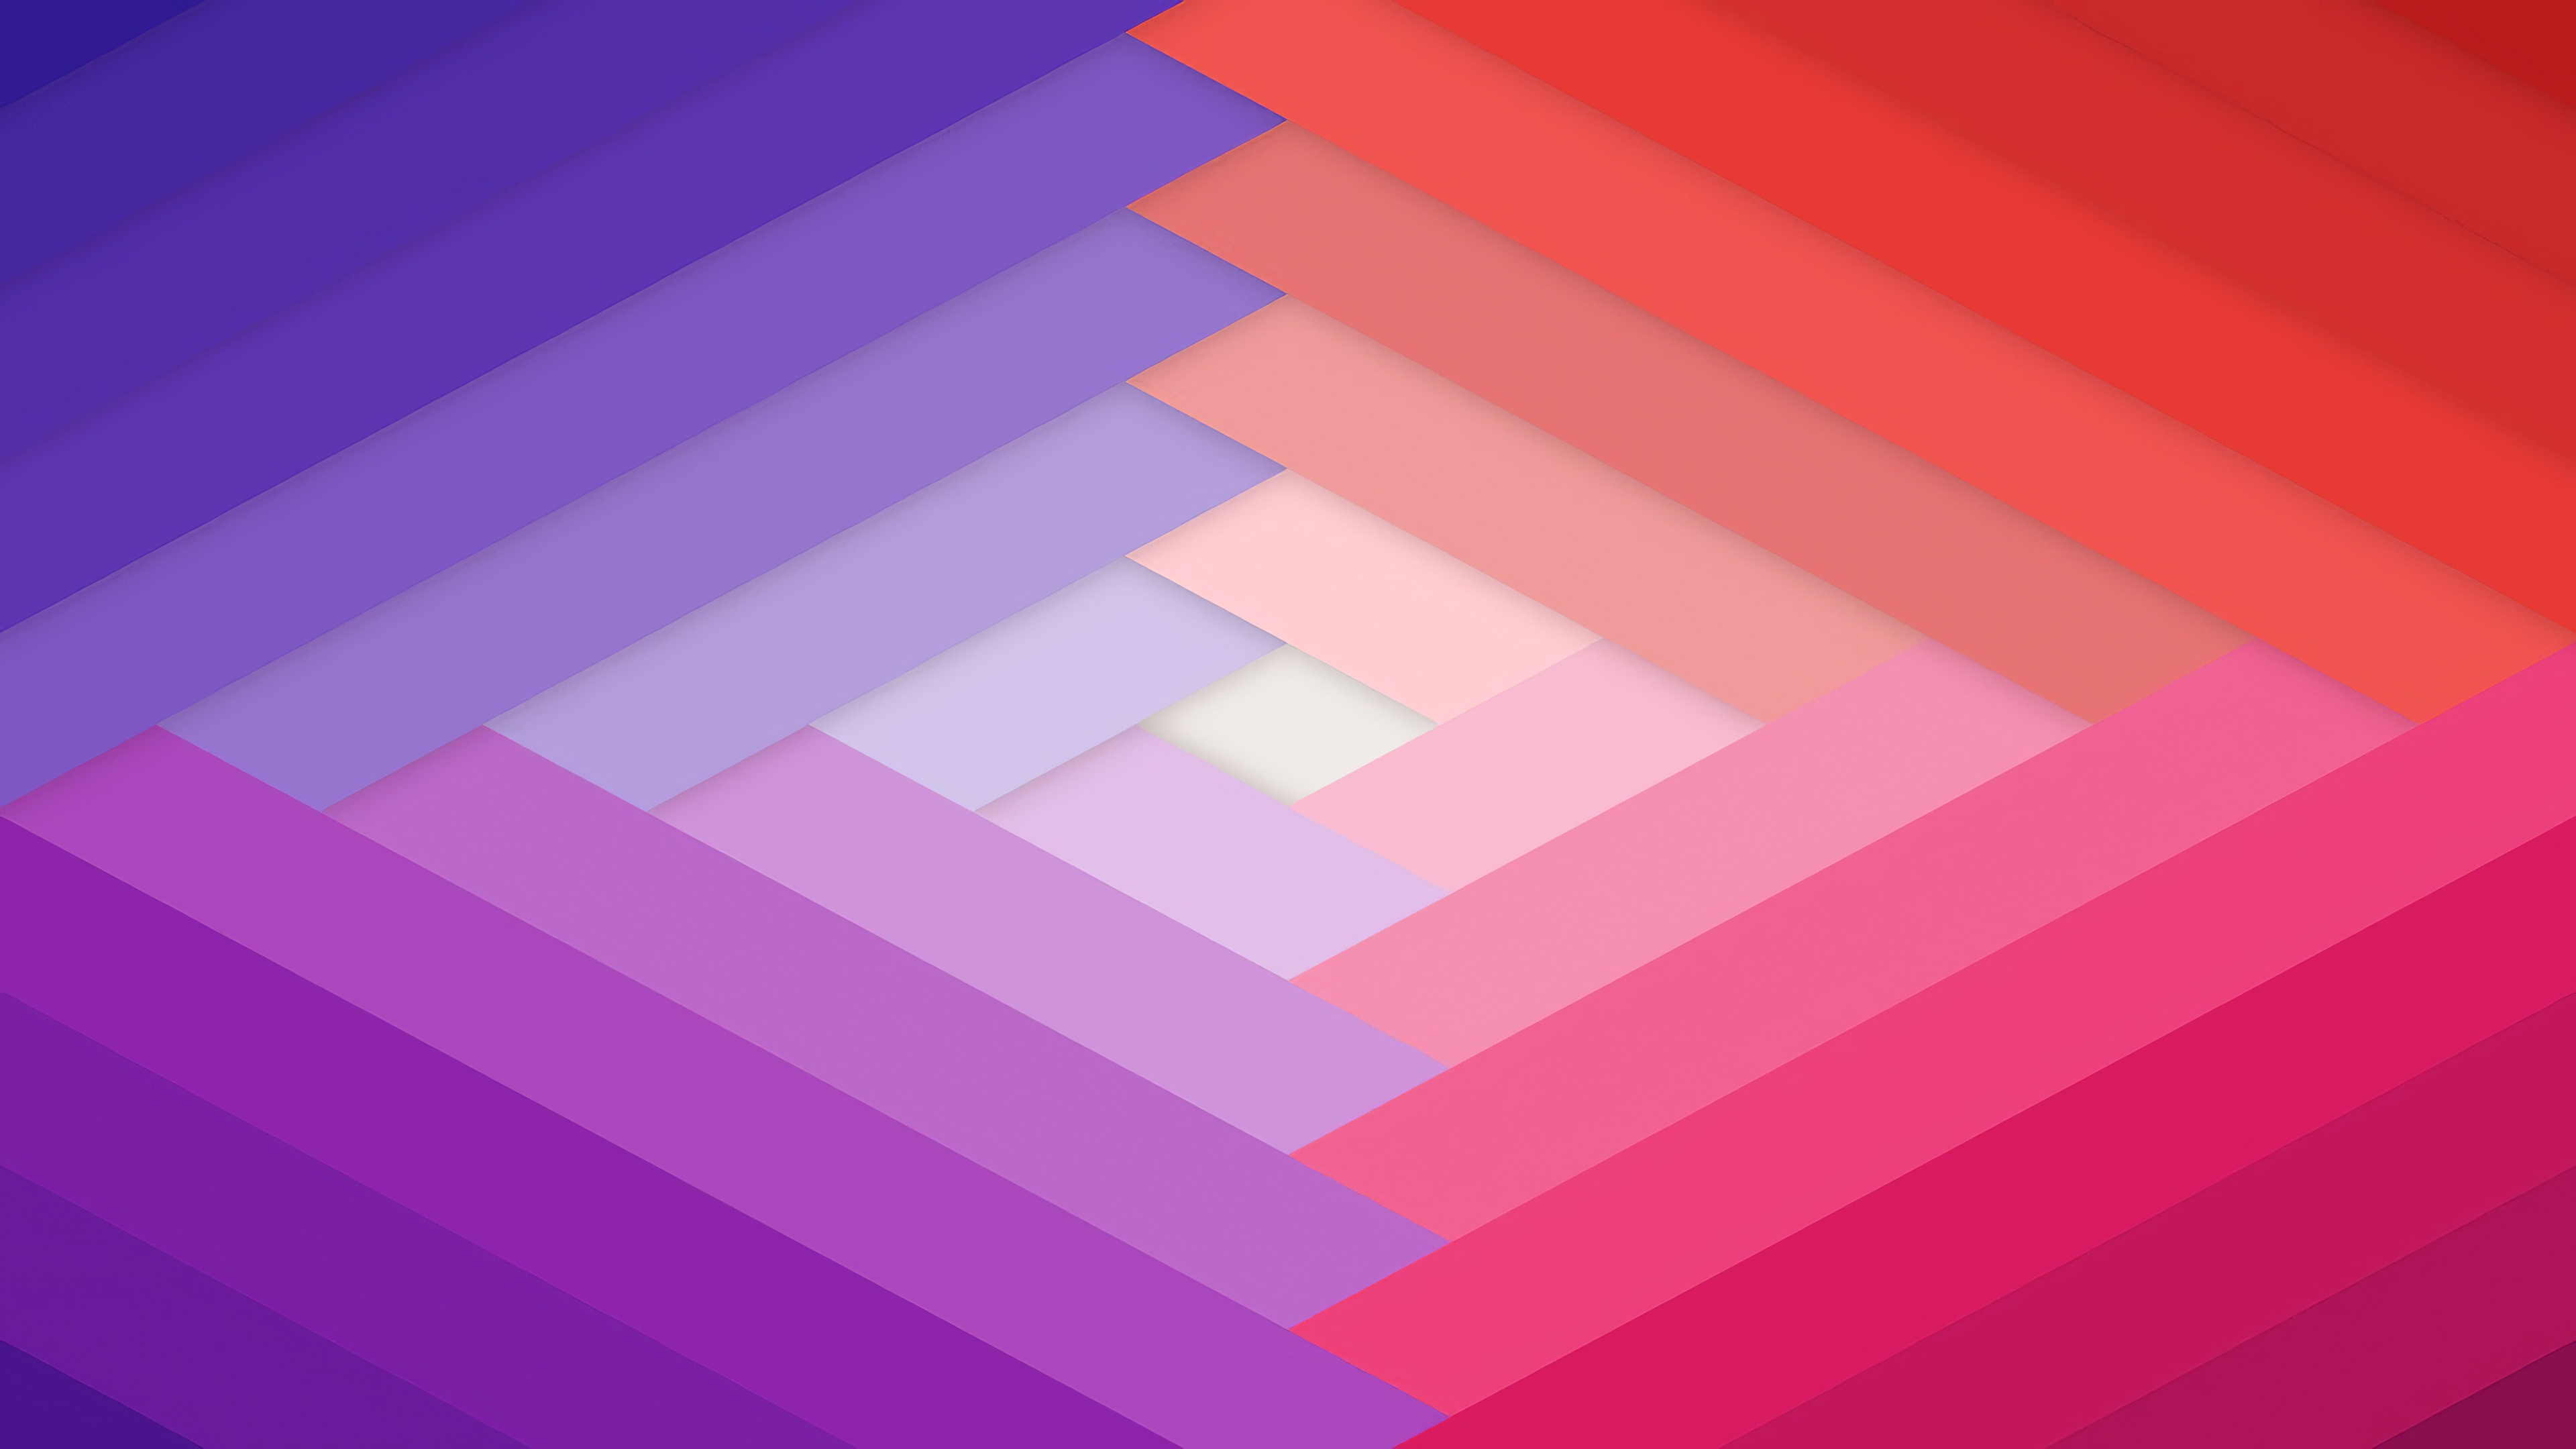 Material Colorful Minimalist 4k Hd Abstract 4k Wallpapers Images Backgrounds Photos And Pictures